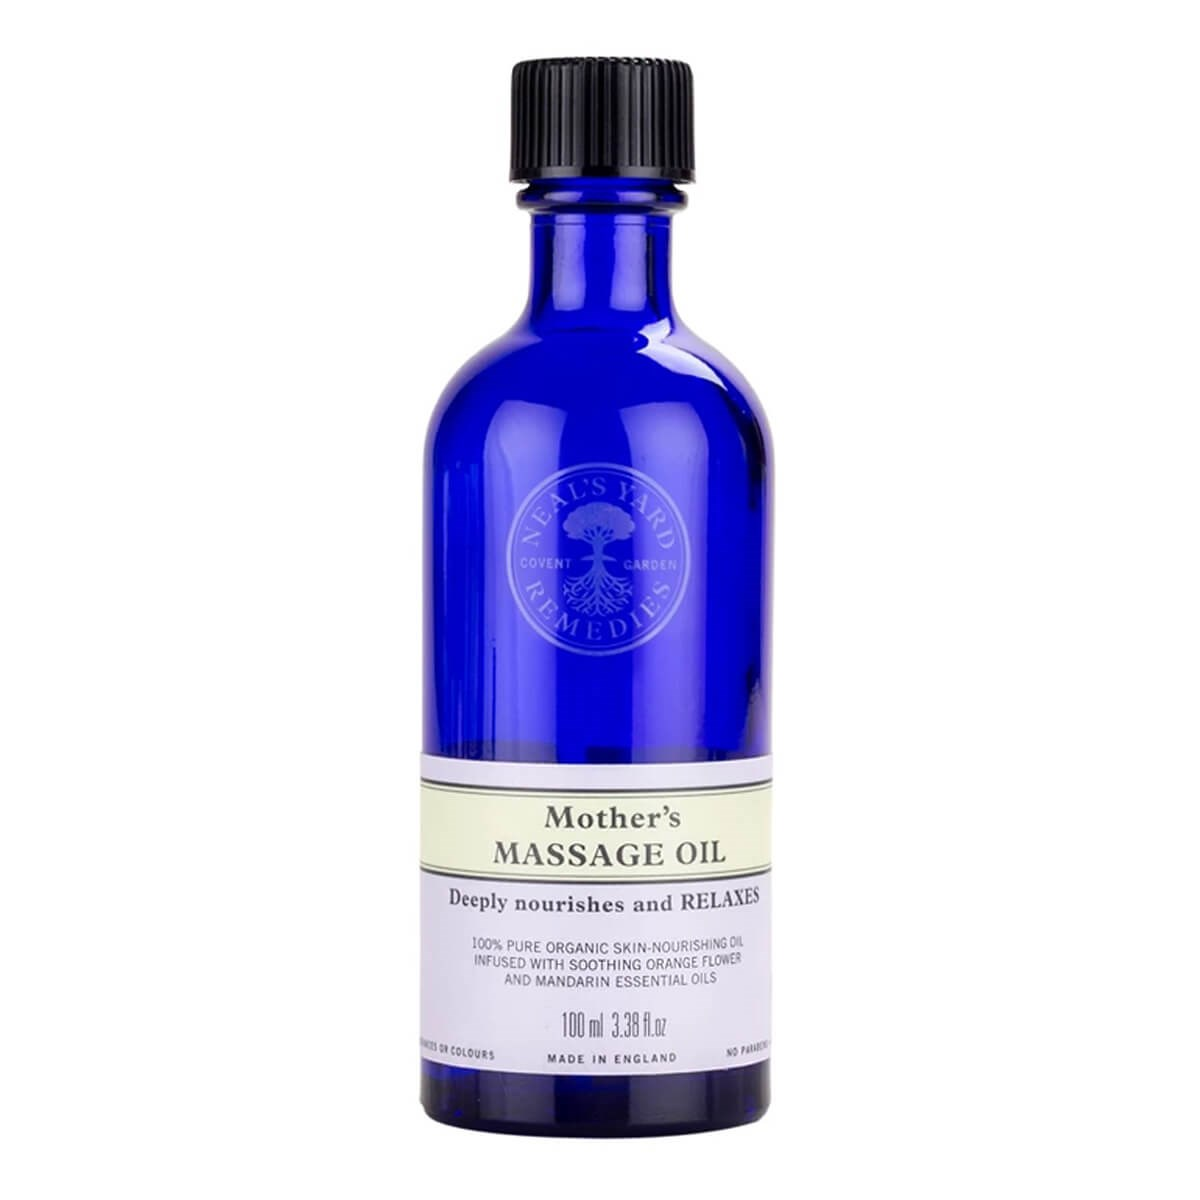 Neal's Yard Remedies Mothers Massage Oil